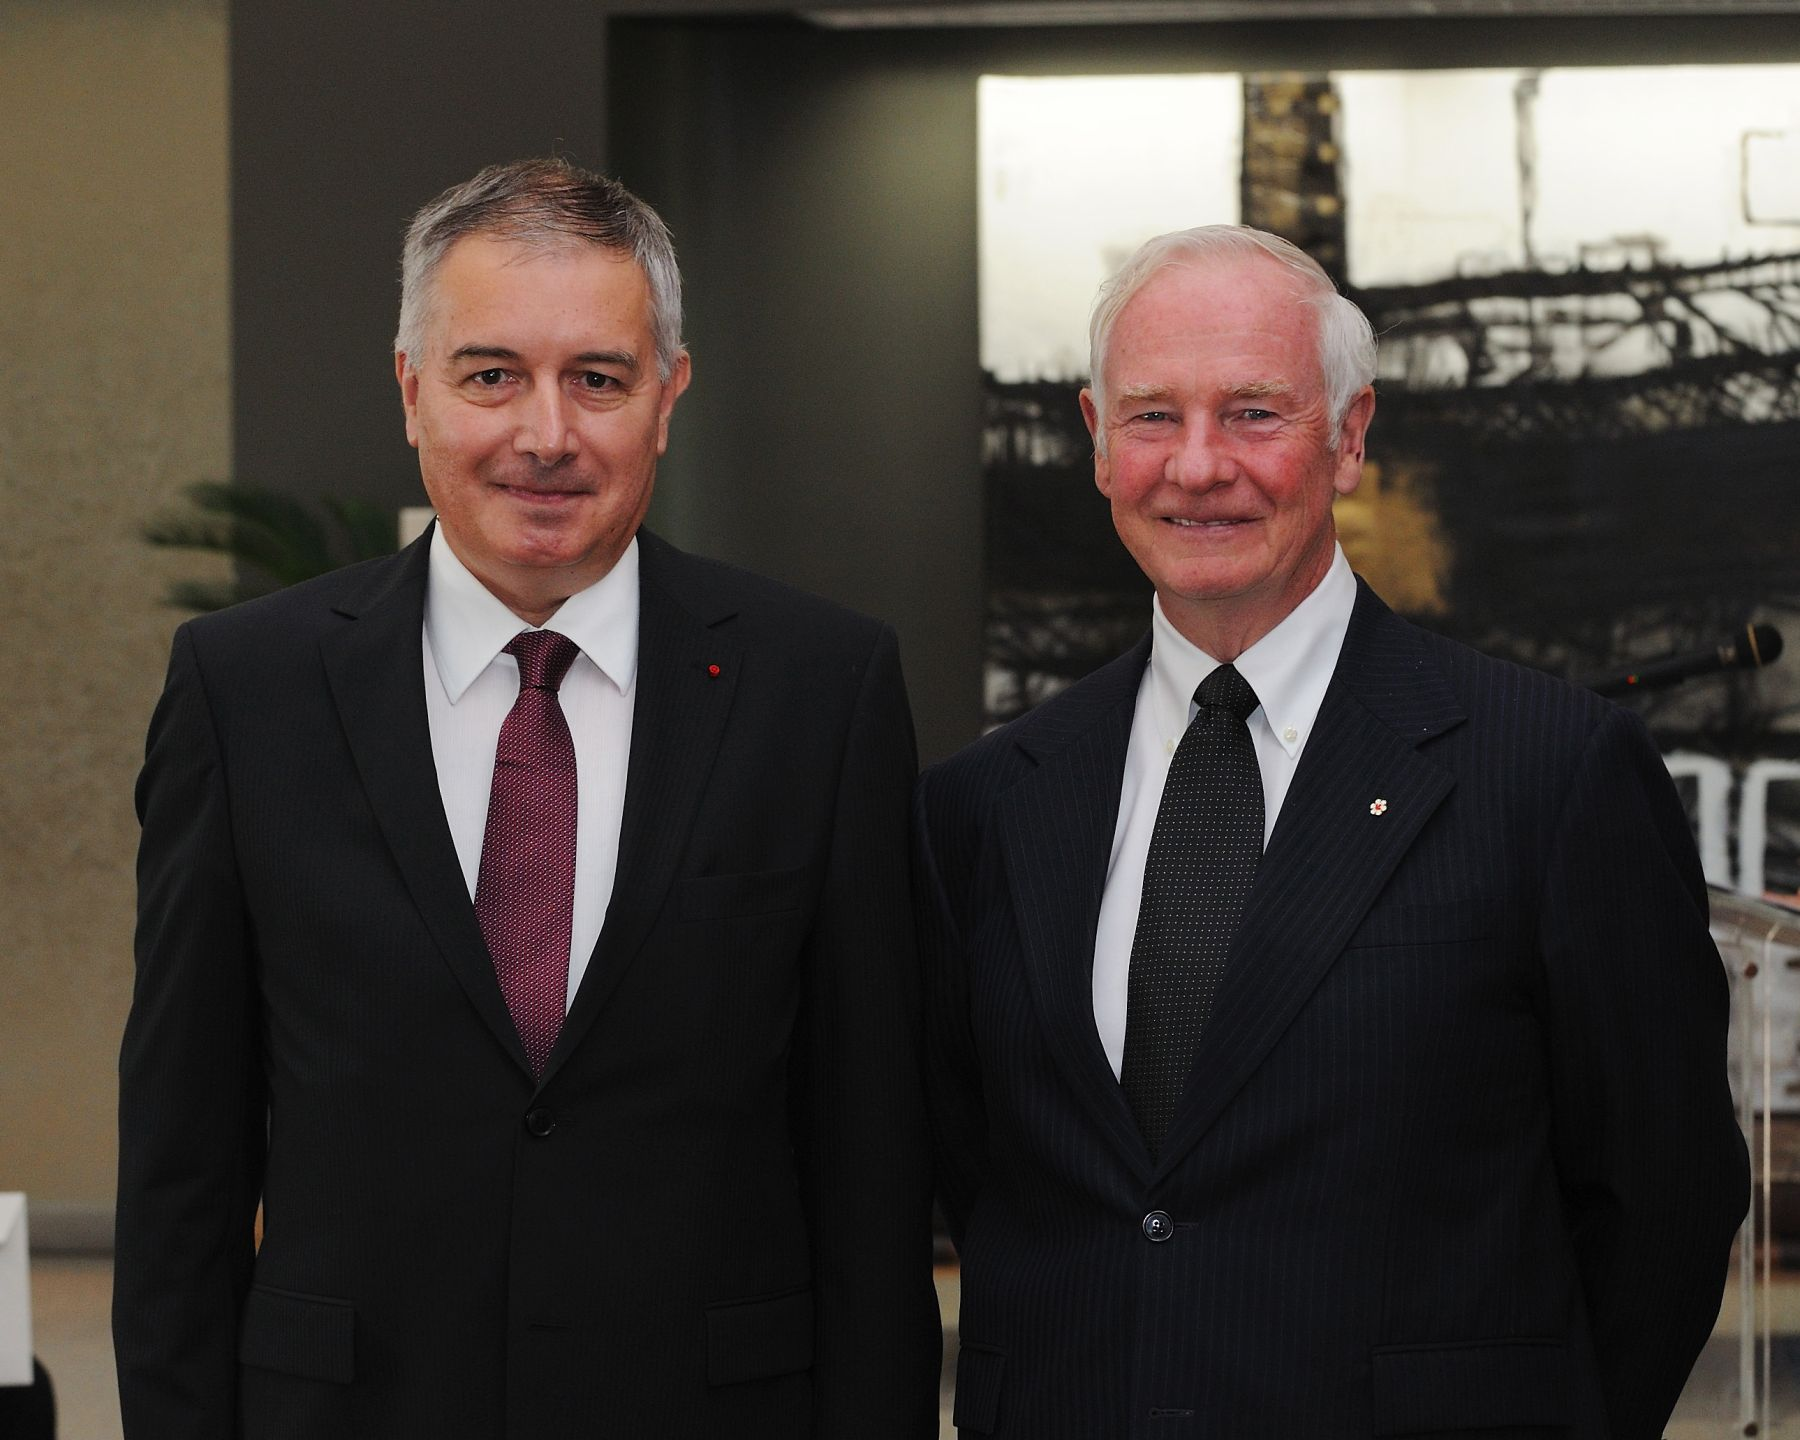 The Governor General received the credentials of His Excellency Philippe Zeller,